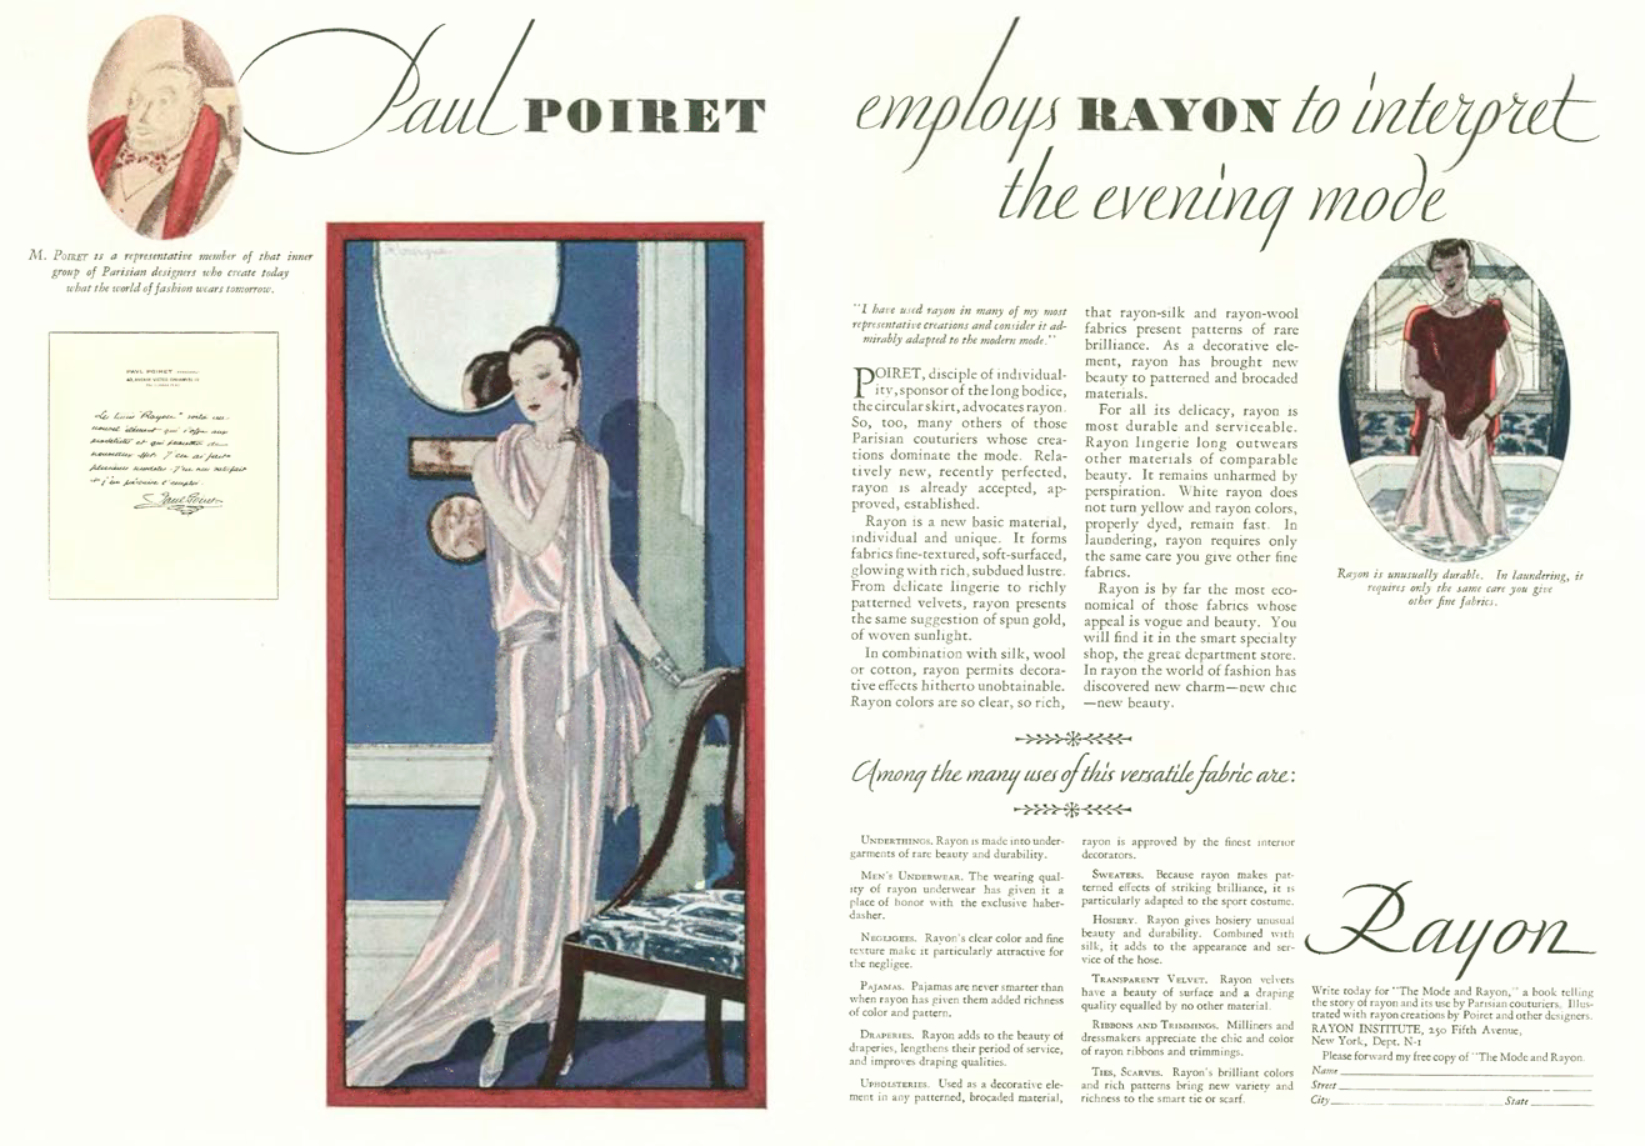 """""""Paul Poiret employs Rayon to interpret the evening mode"""" advert in The New Yorker, 1928 offering readers a free copy of """"The Mode and Rayon"""" booklet."""